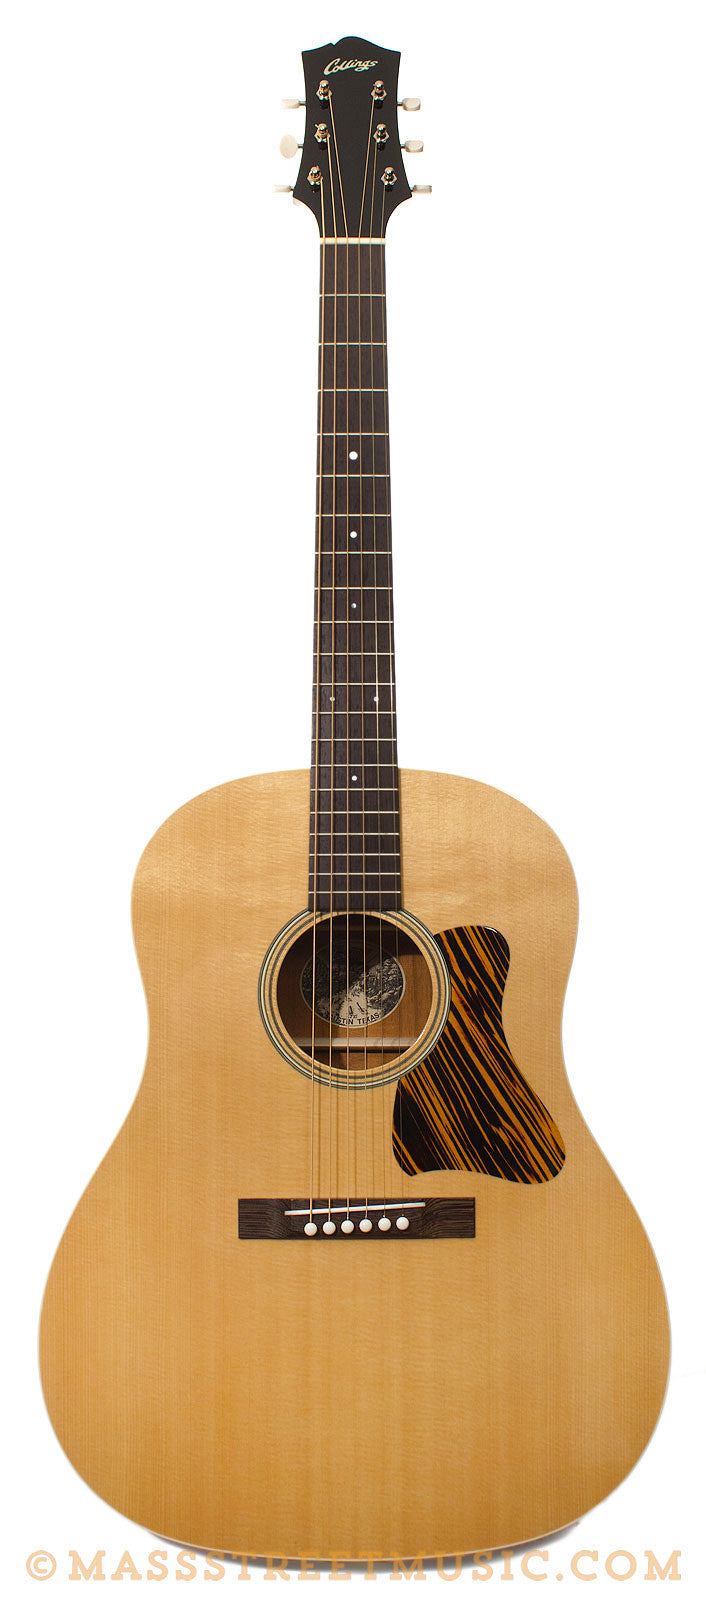 collings cj35 acoustic guitar used with original hard case mass street music store. Black Bedroom Furniture Sets. Home Design Ideas